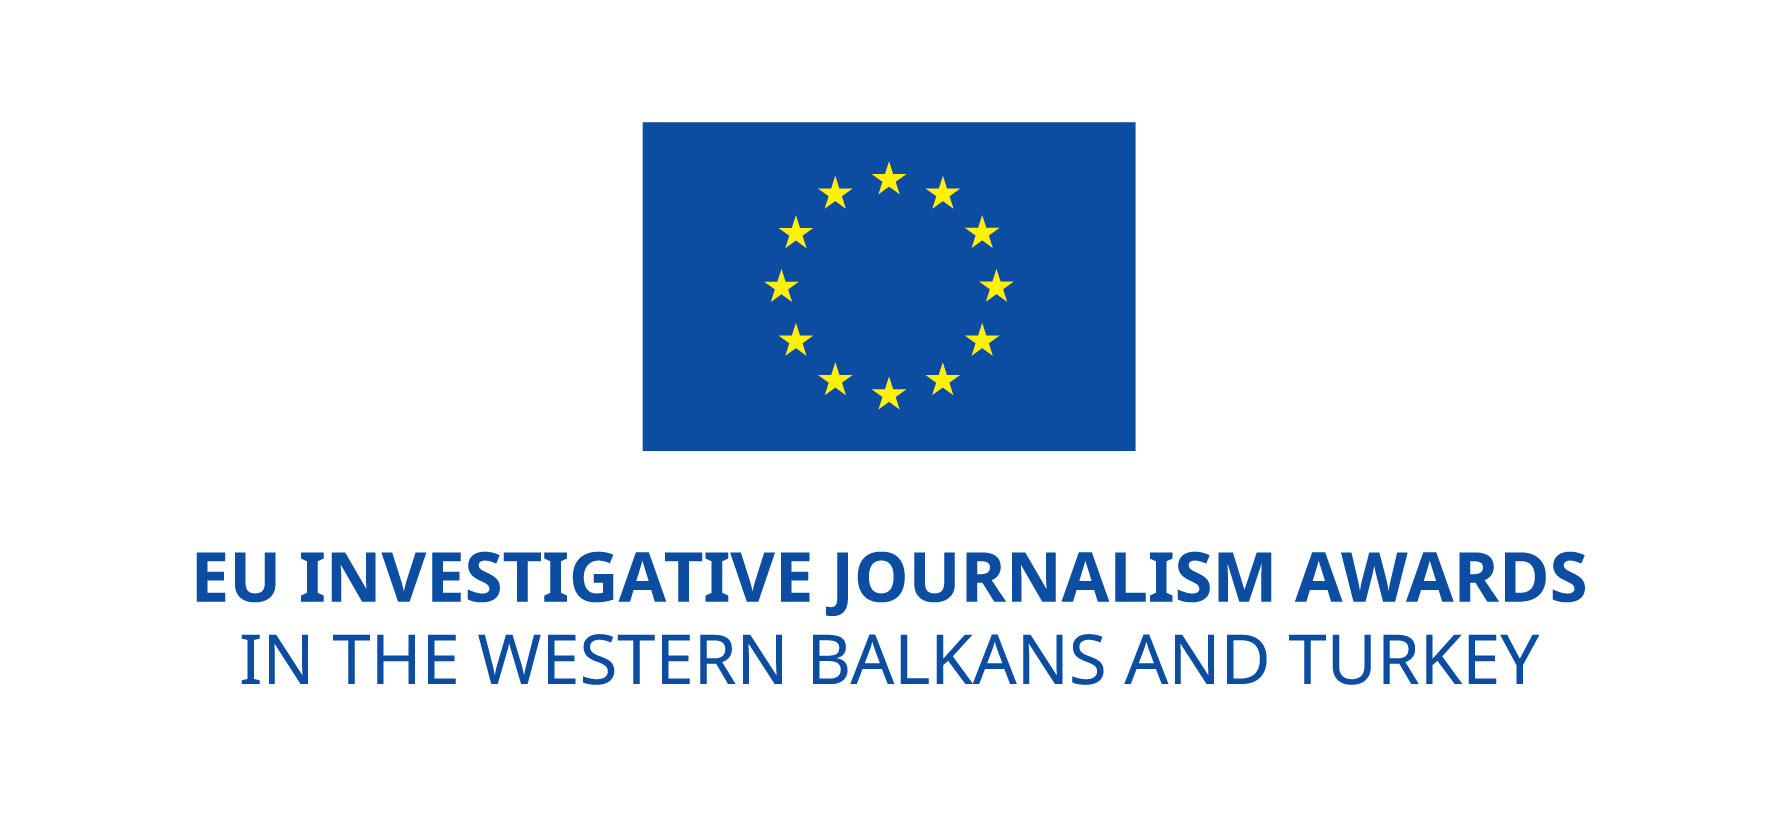 Regional EU award scheme for investigative journalism in Western Balkans and Turkey launched